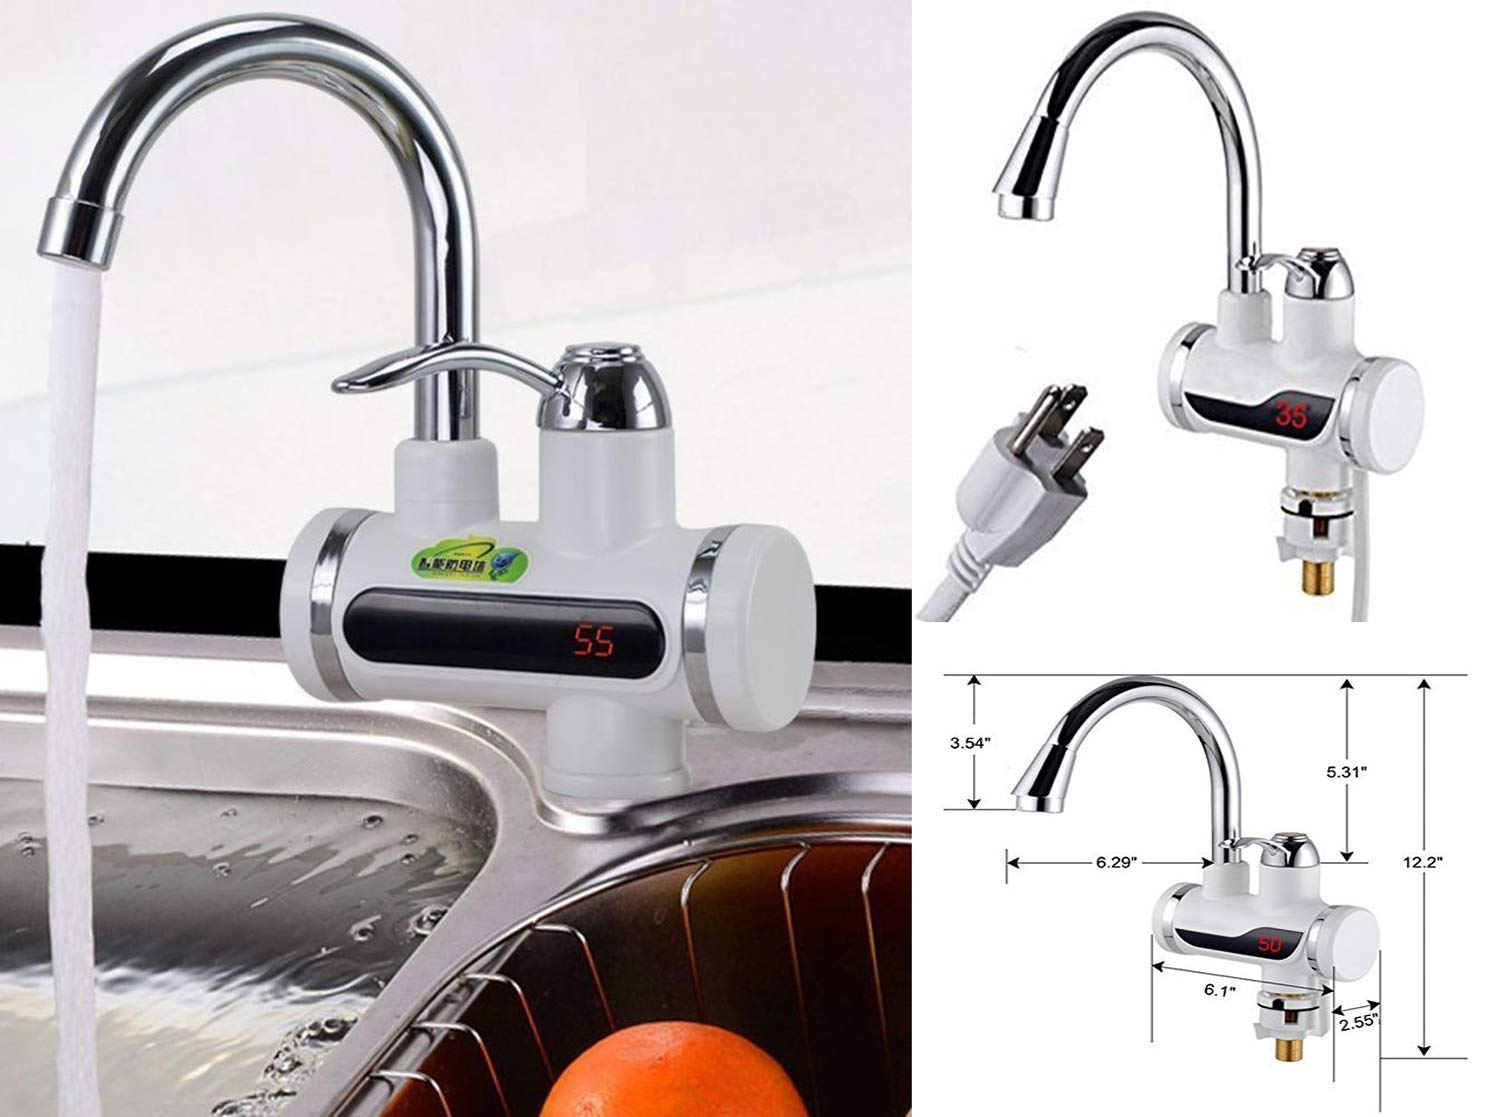 Volbit 110V 3sec Instant Tankless Electric Hot Water Heater Faucet Kitchen Fast Heating Tap Water Faucet with LED Digital Display